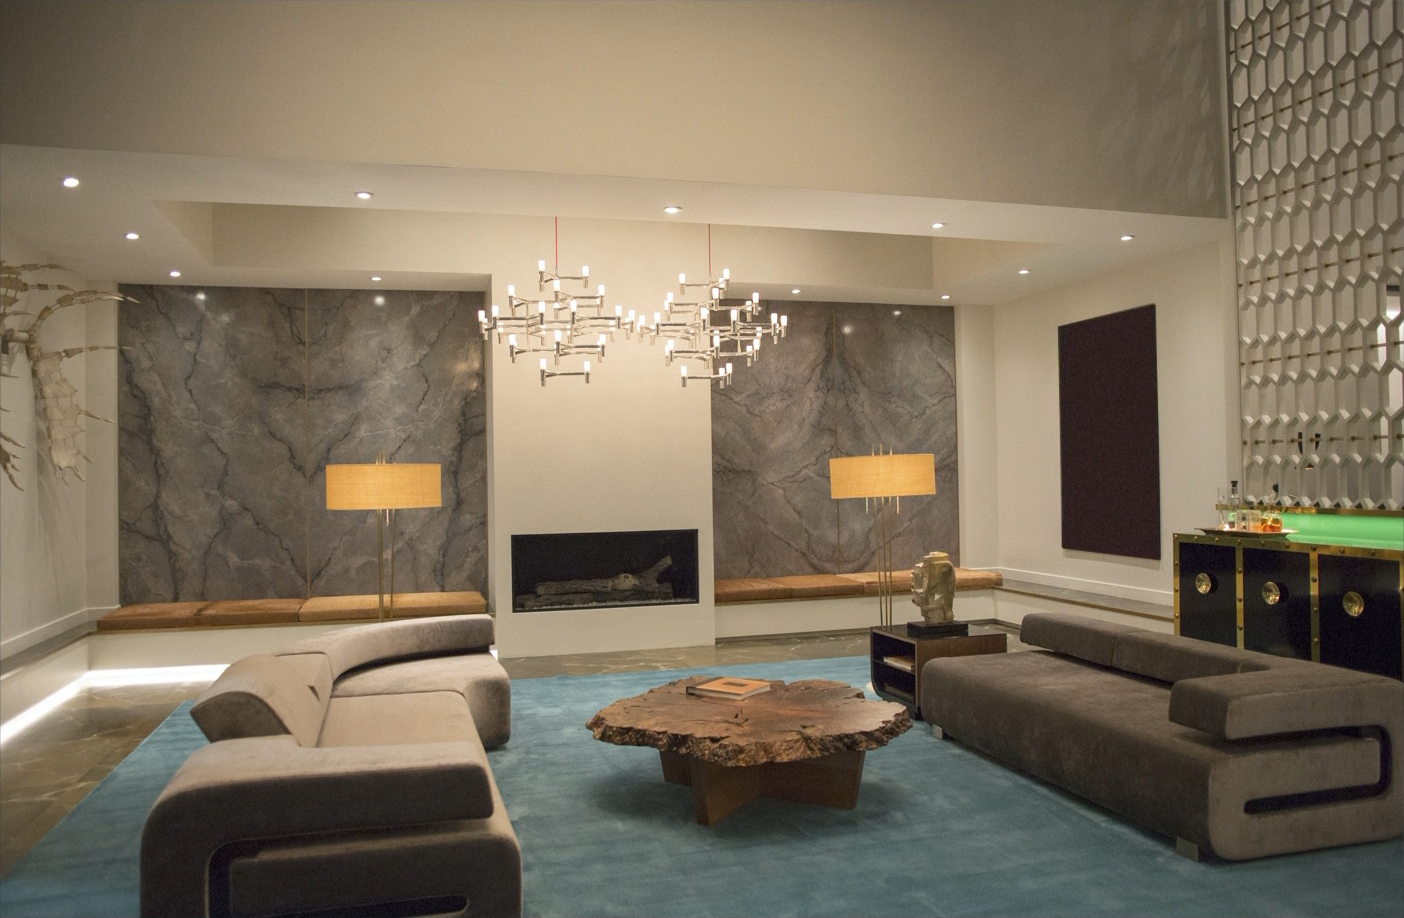 Fiftyshadesin Photos Christian Grey S Apartment From